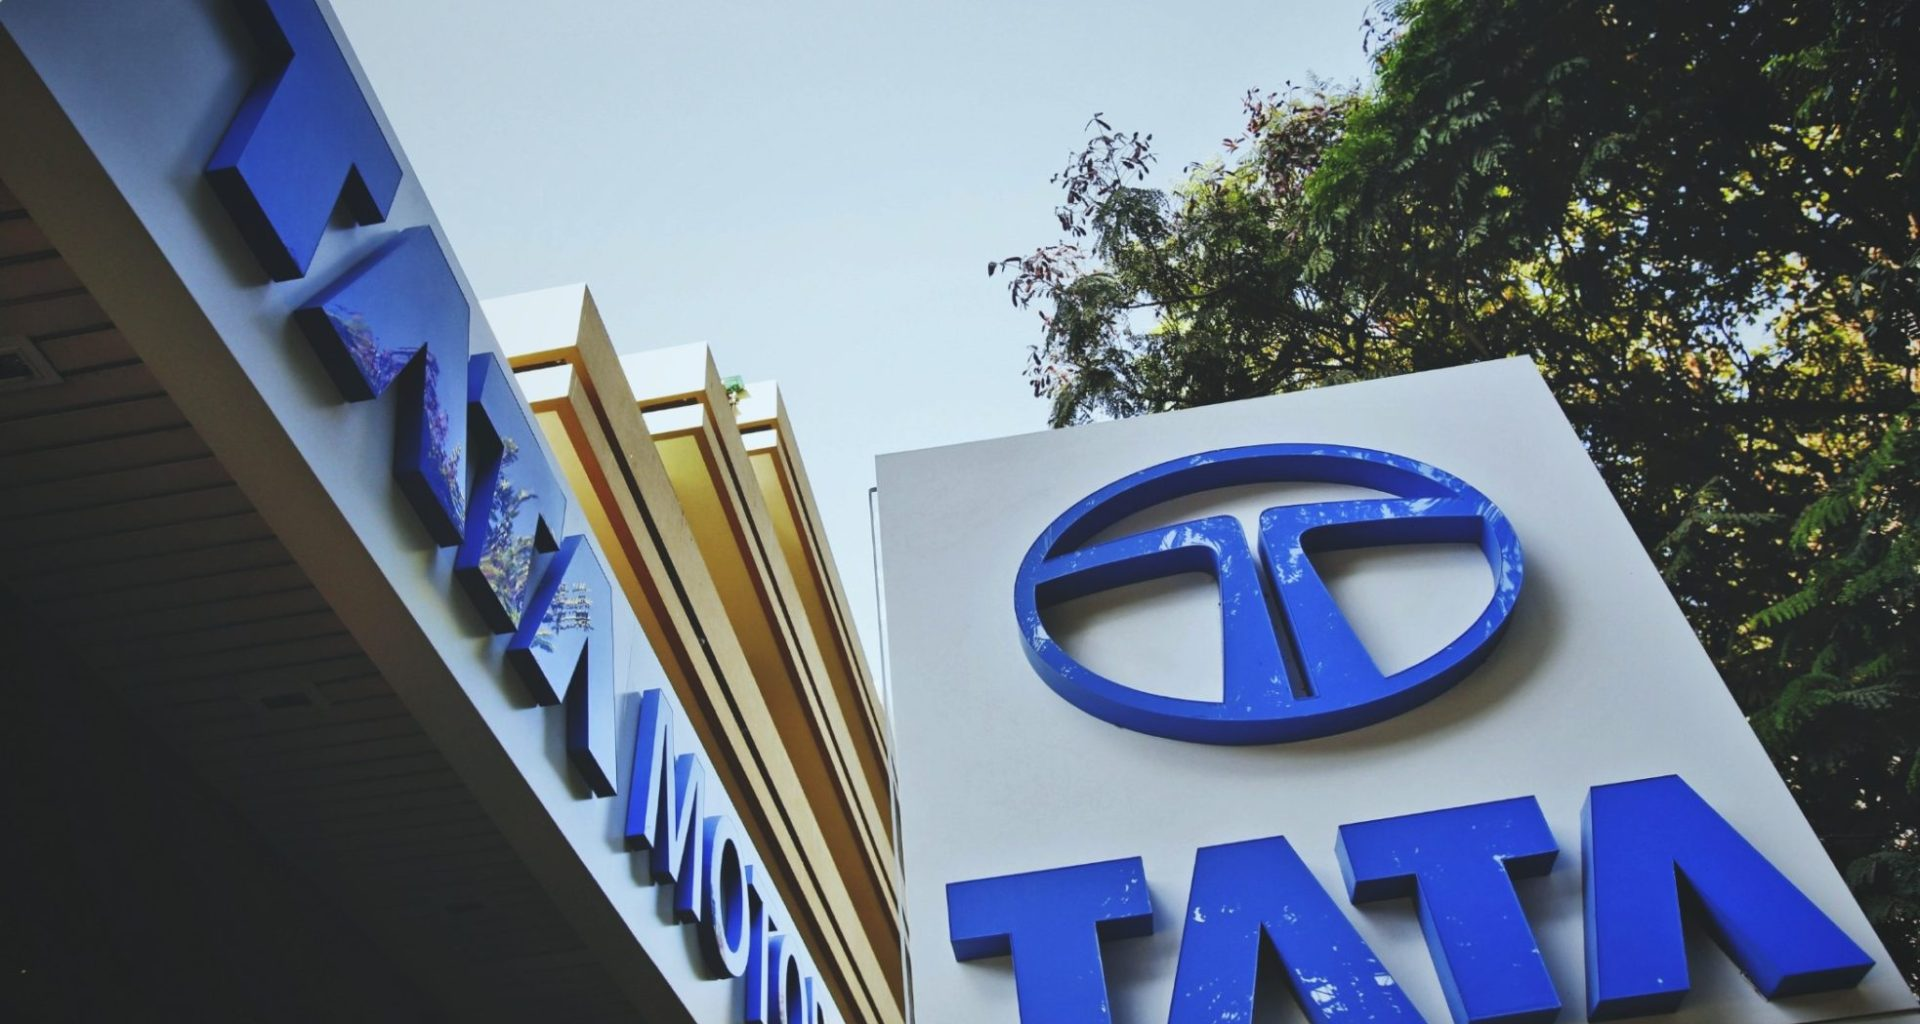 Tata Motors Acquisition of Jaguar and Land Rover for Case Study - ilearnlot